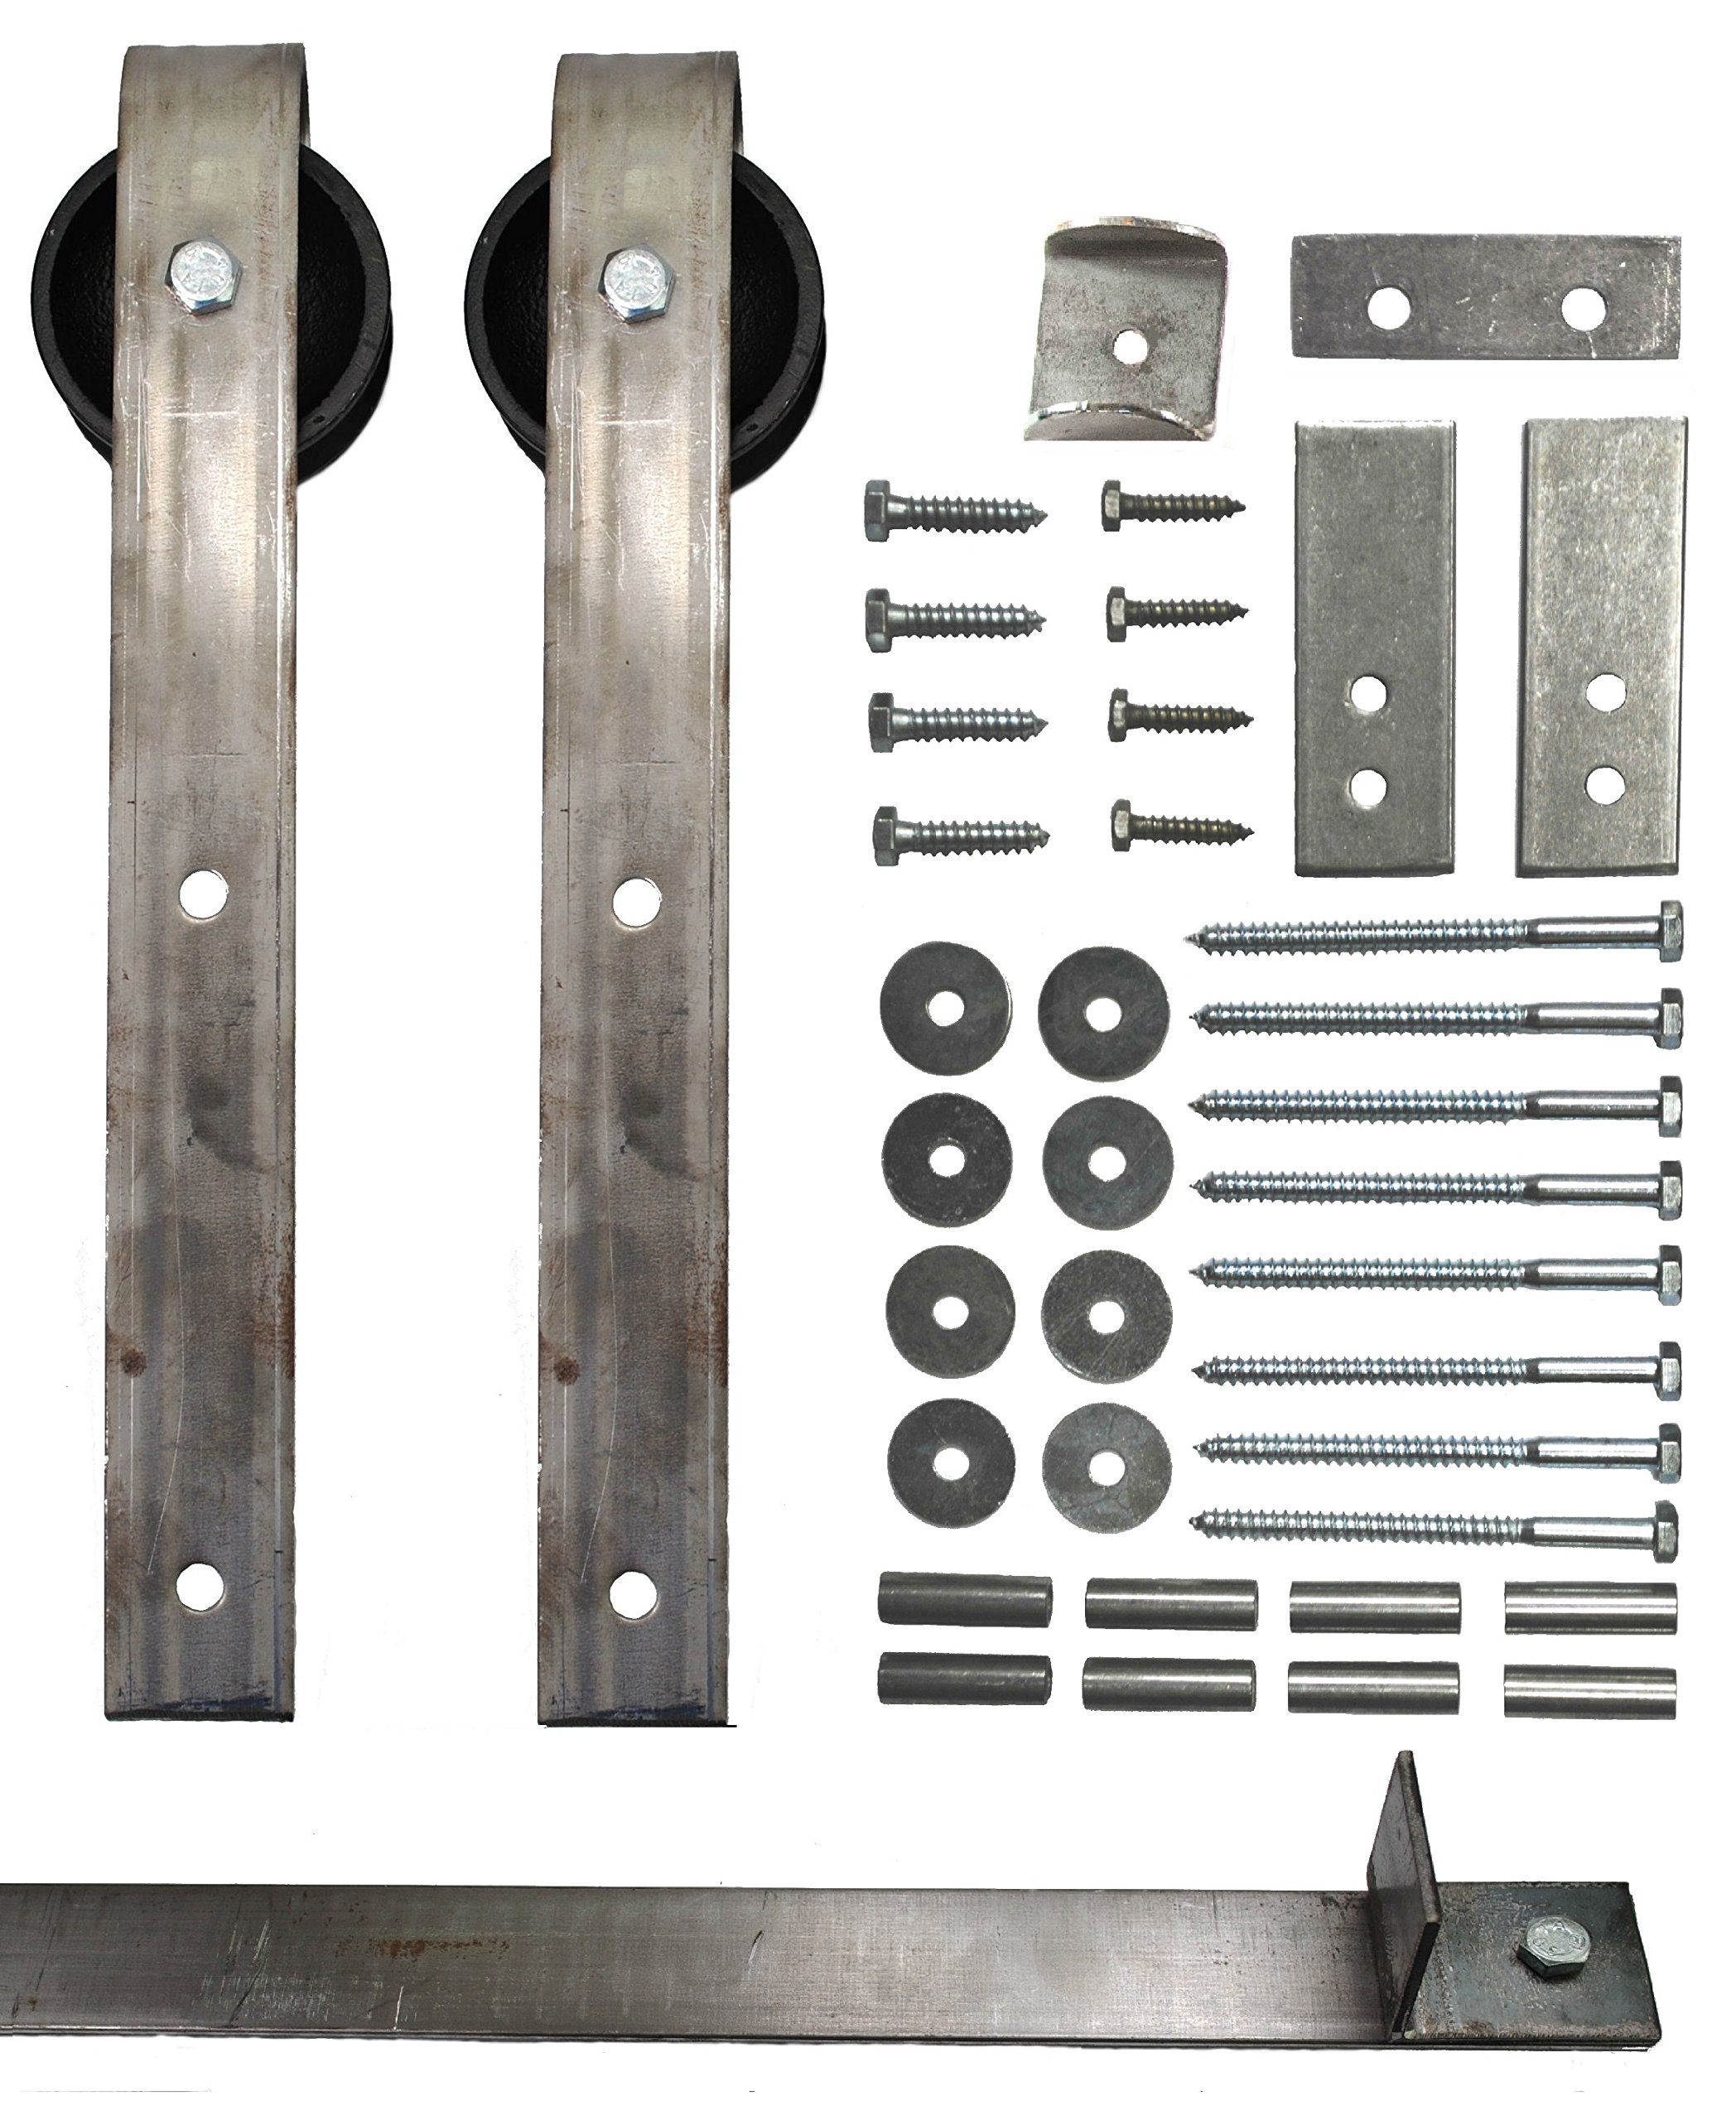 Sliding Barn Door Hardware Kit with 12 Ft. Track Included - Made in USA by Mapp Caster